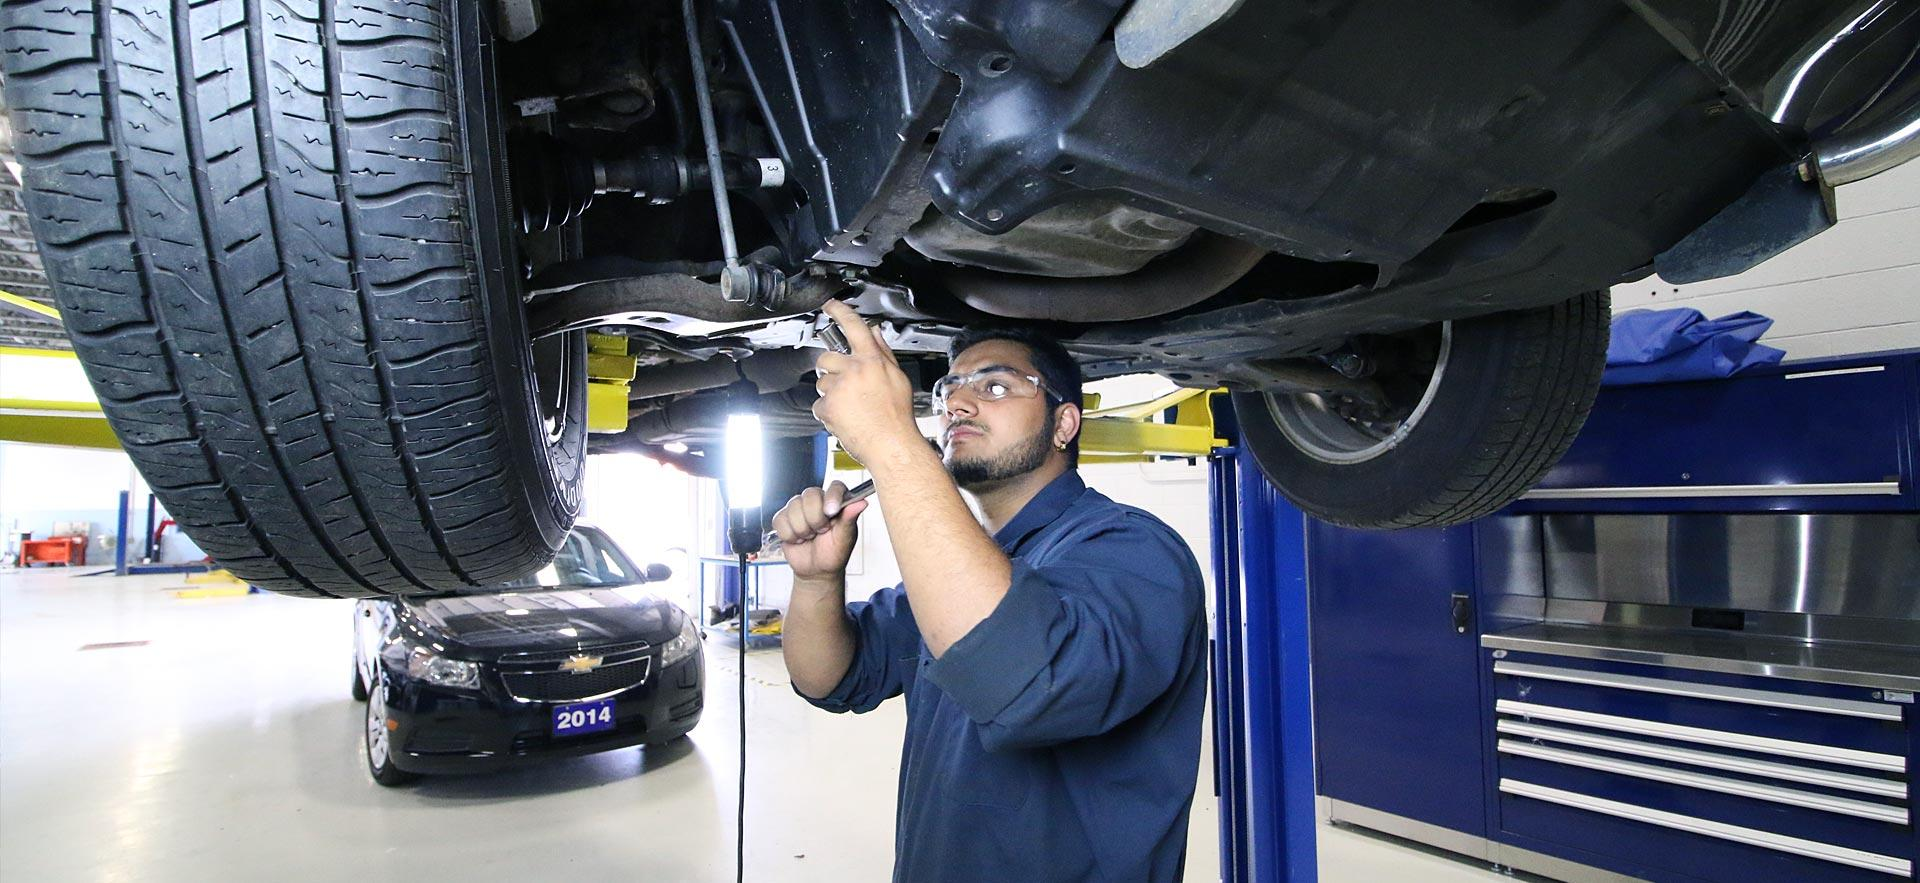 One male Motive Power Fundamentals - Automotive Repair student works a car thats on a lift.